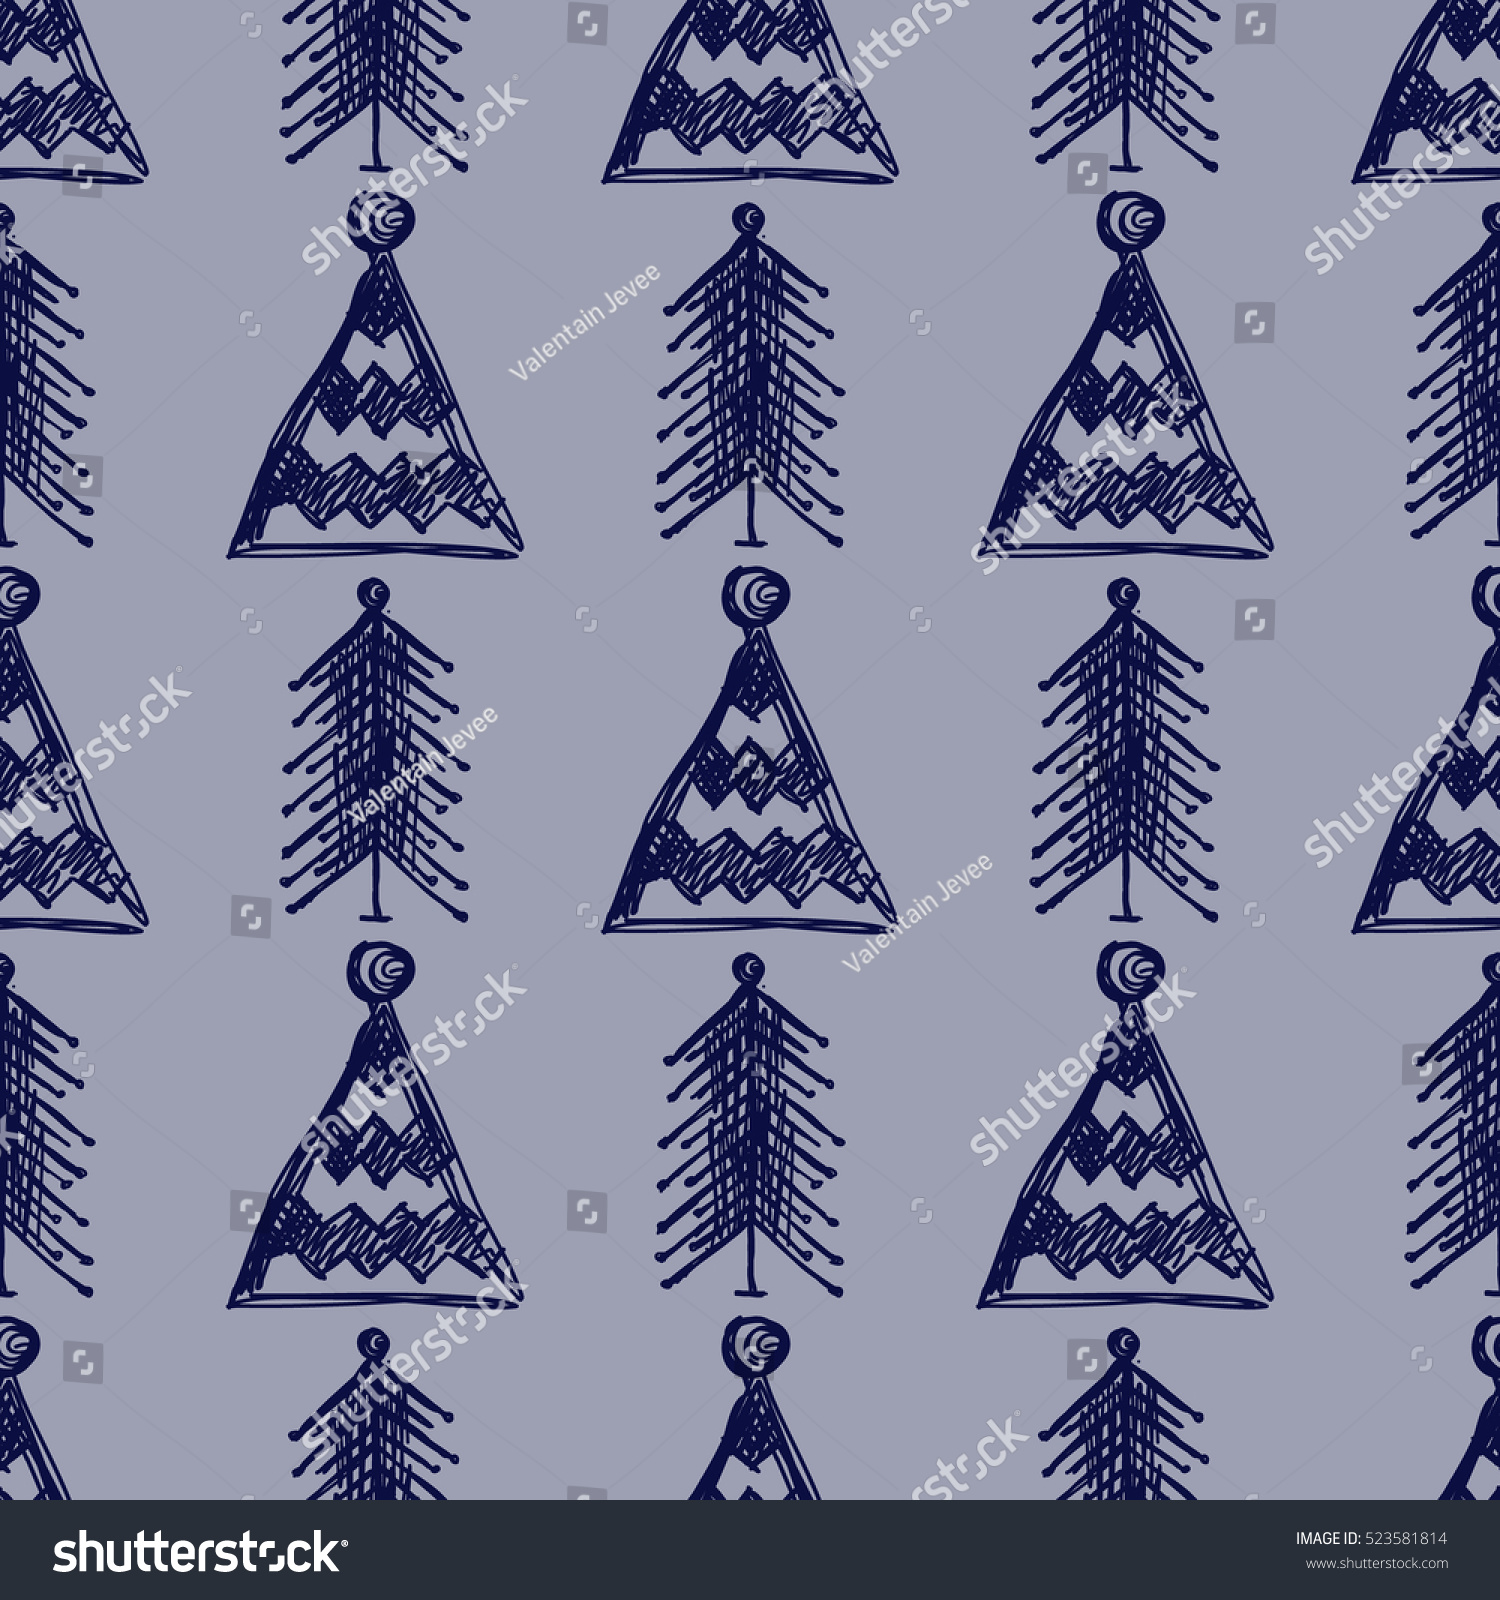 Seamless fir tree scandinavian pattern textile background wrapping - Seamless Vector Pattern With Fir Trees Blue Seasonal Winter Background With Cute Hand Drawn